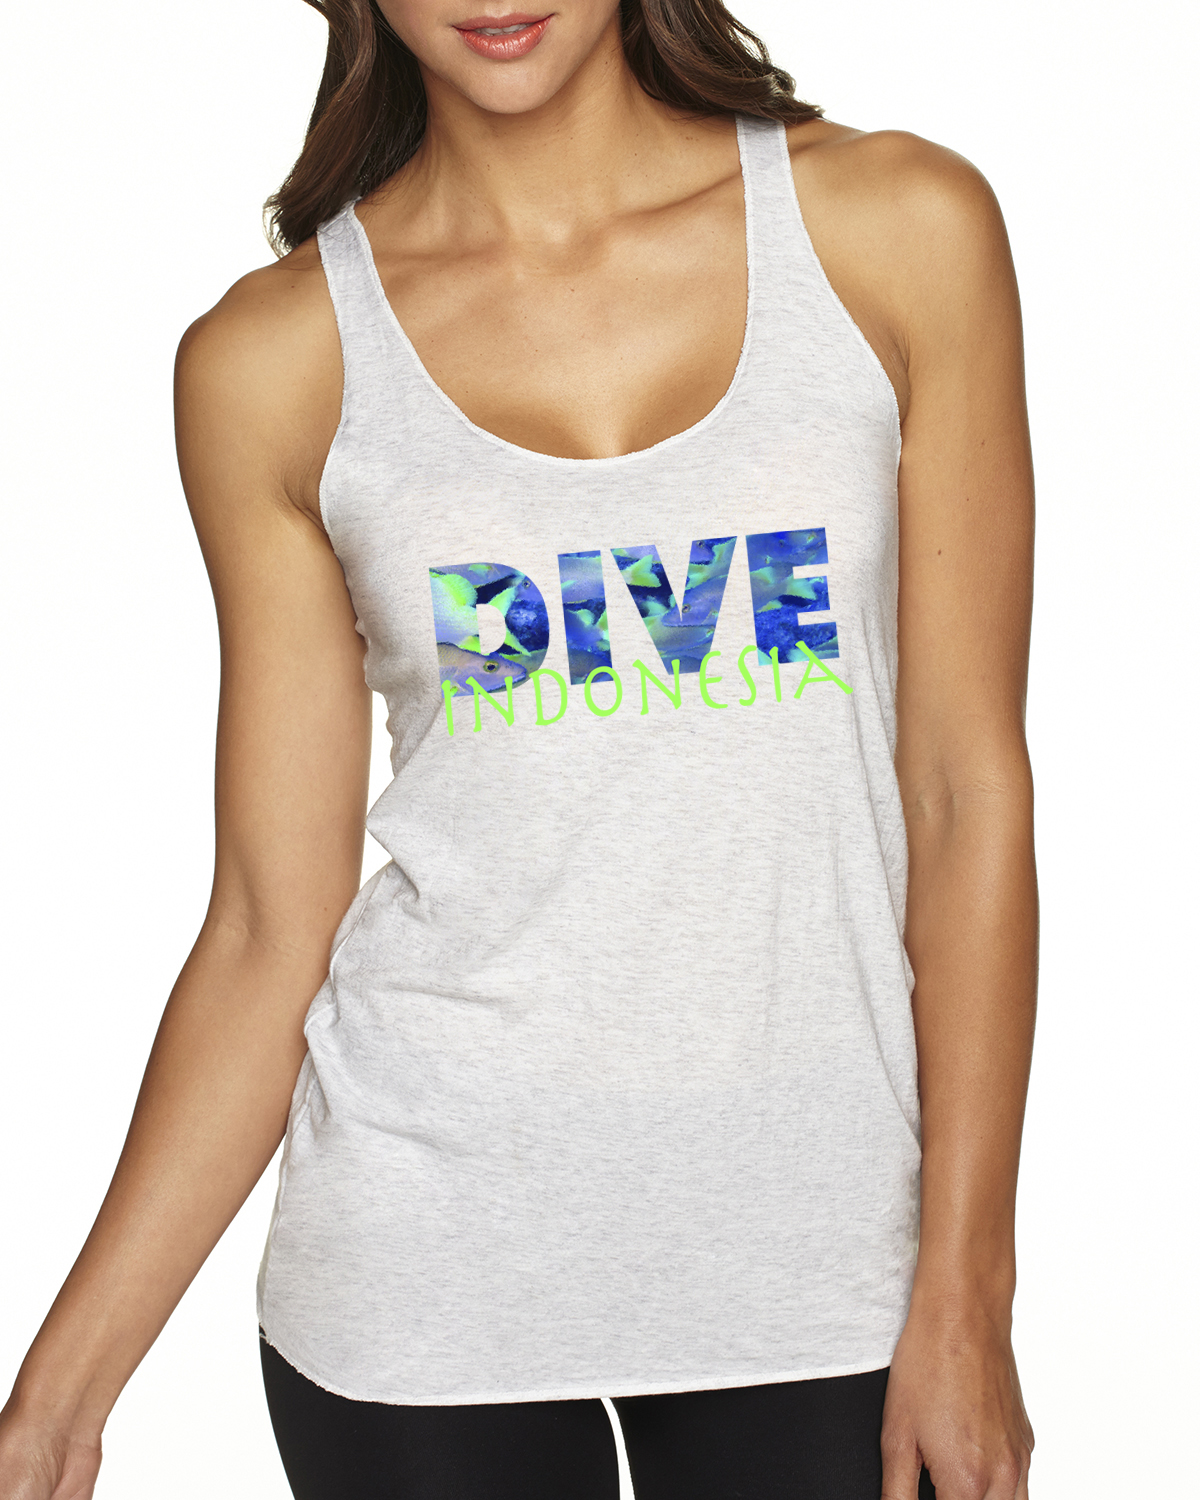 DIVE Indonesia Racer-back tank top (Heather White)